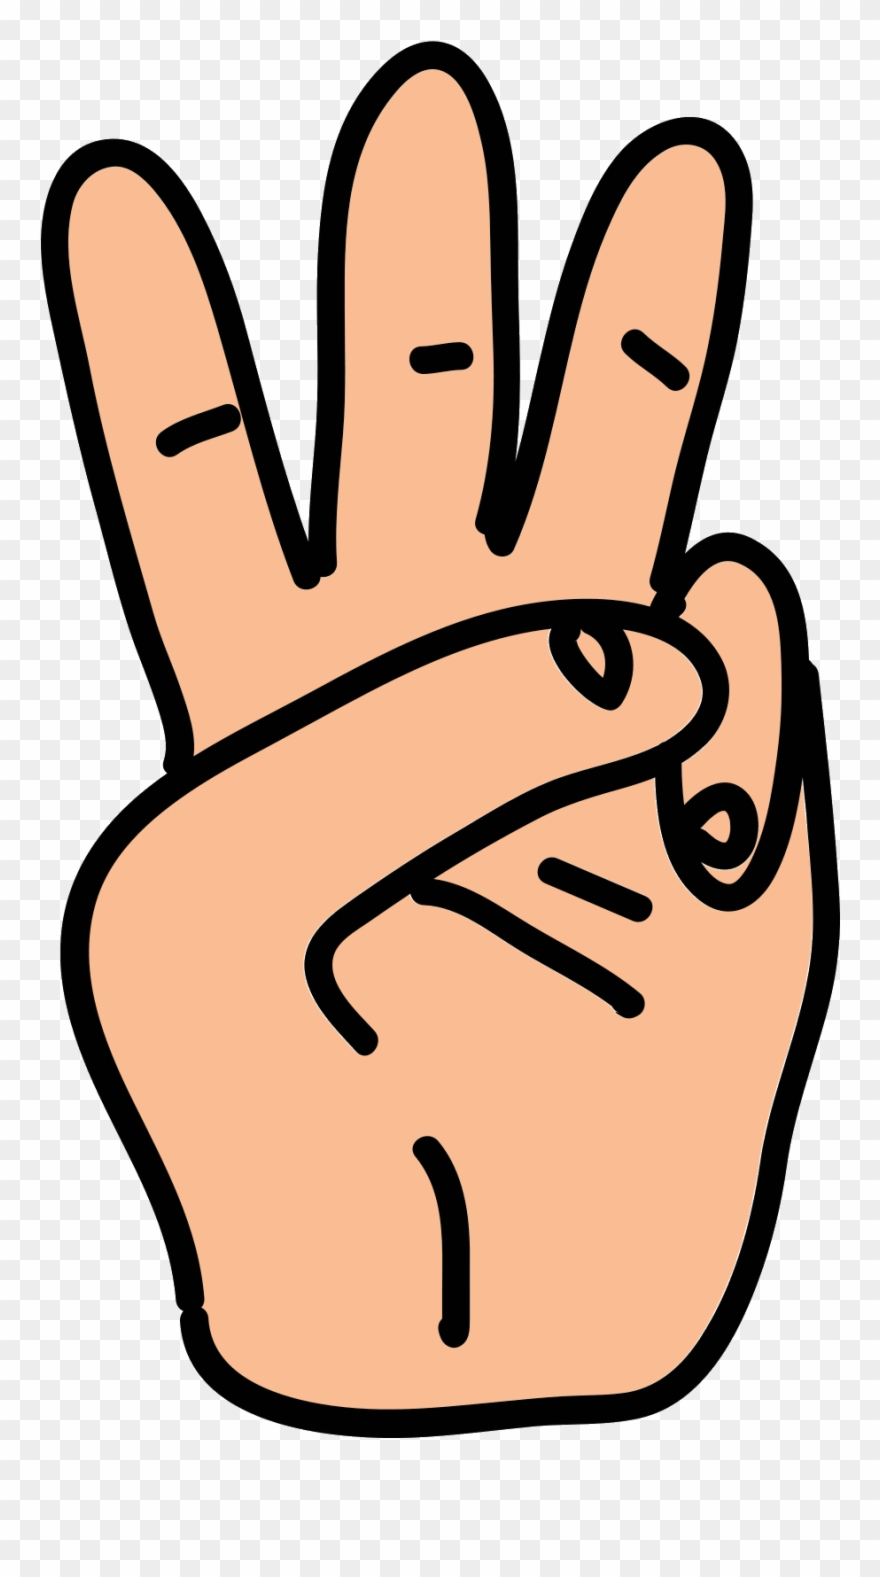 3 fingers on hand clipart black and white stock Snap Fingers Clip Art - Three Fingers Clip Art - Png Download ... black and white stock